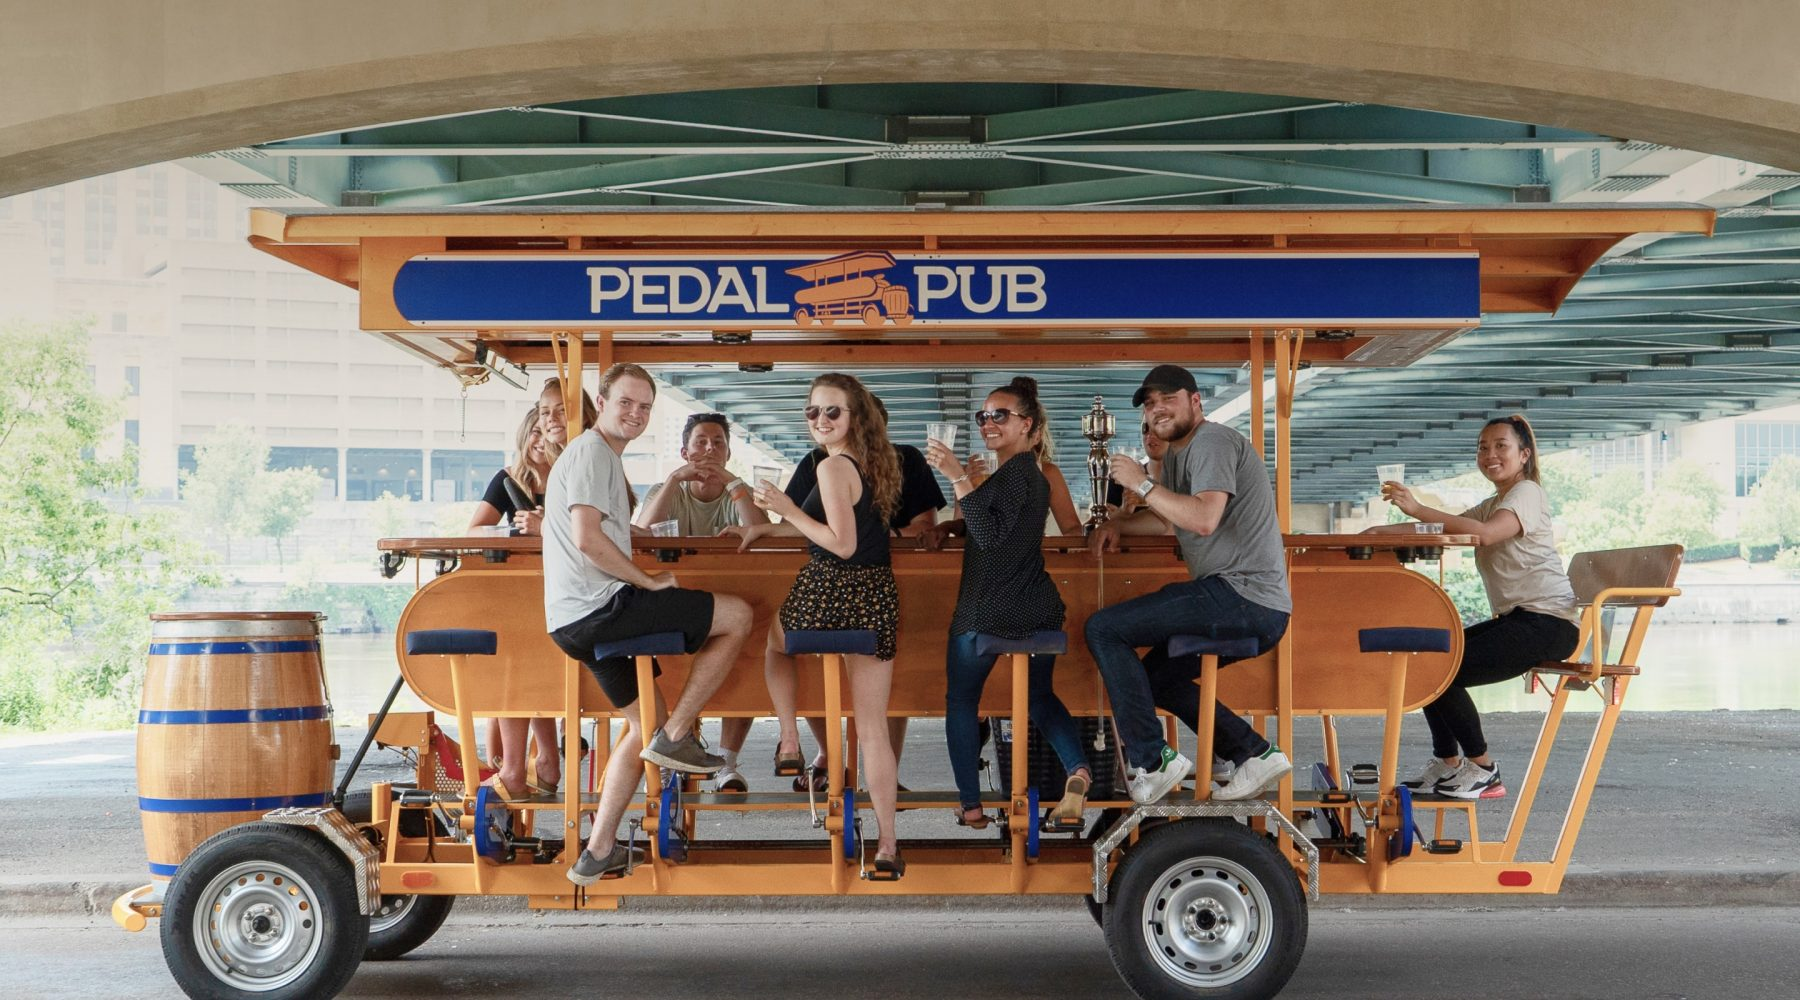 You Can Officially Drink Beer on a Party Bike in Calgary